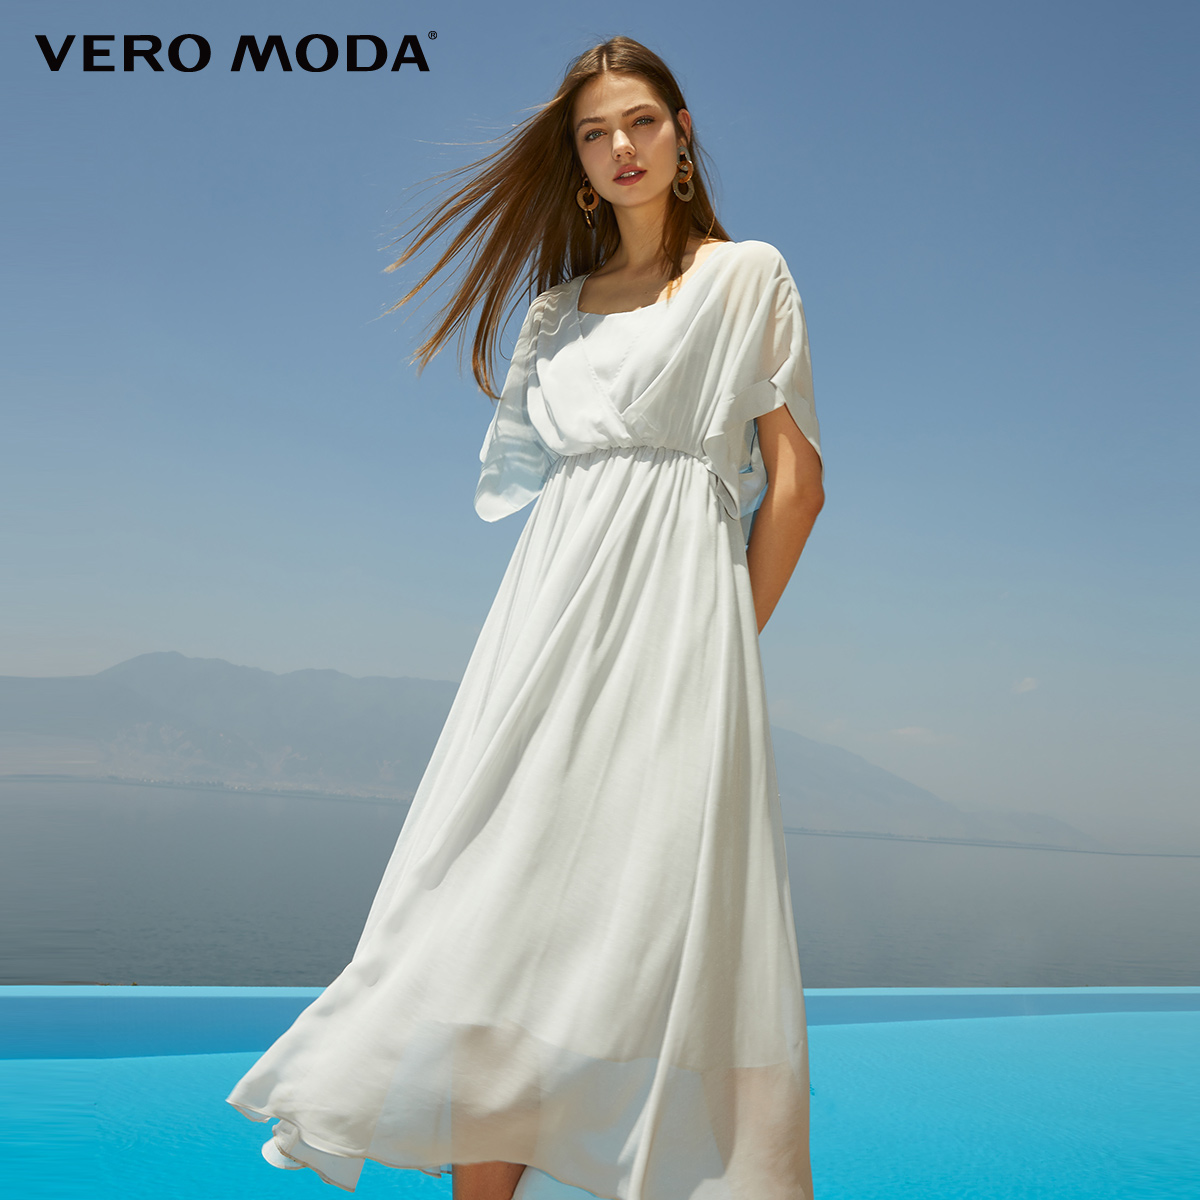 Vero Moda Women's Fake Two-piece Chiffon Long Dress | 31927B547